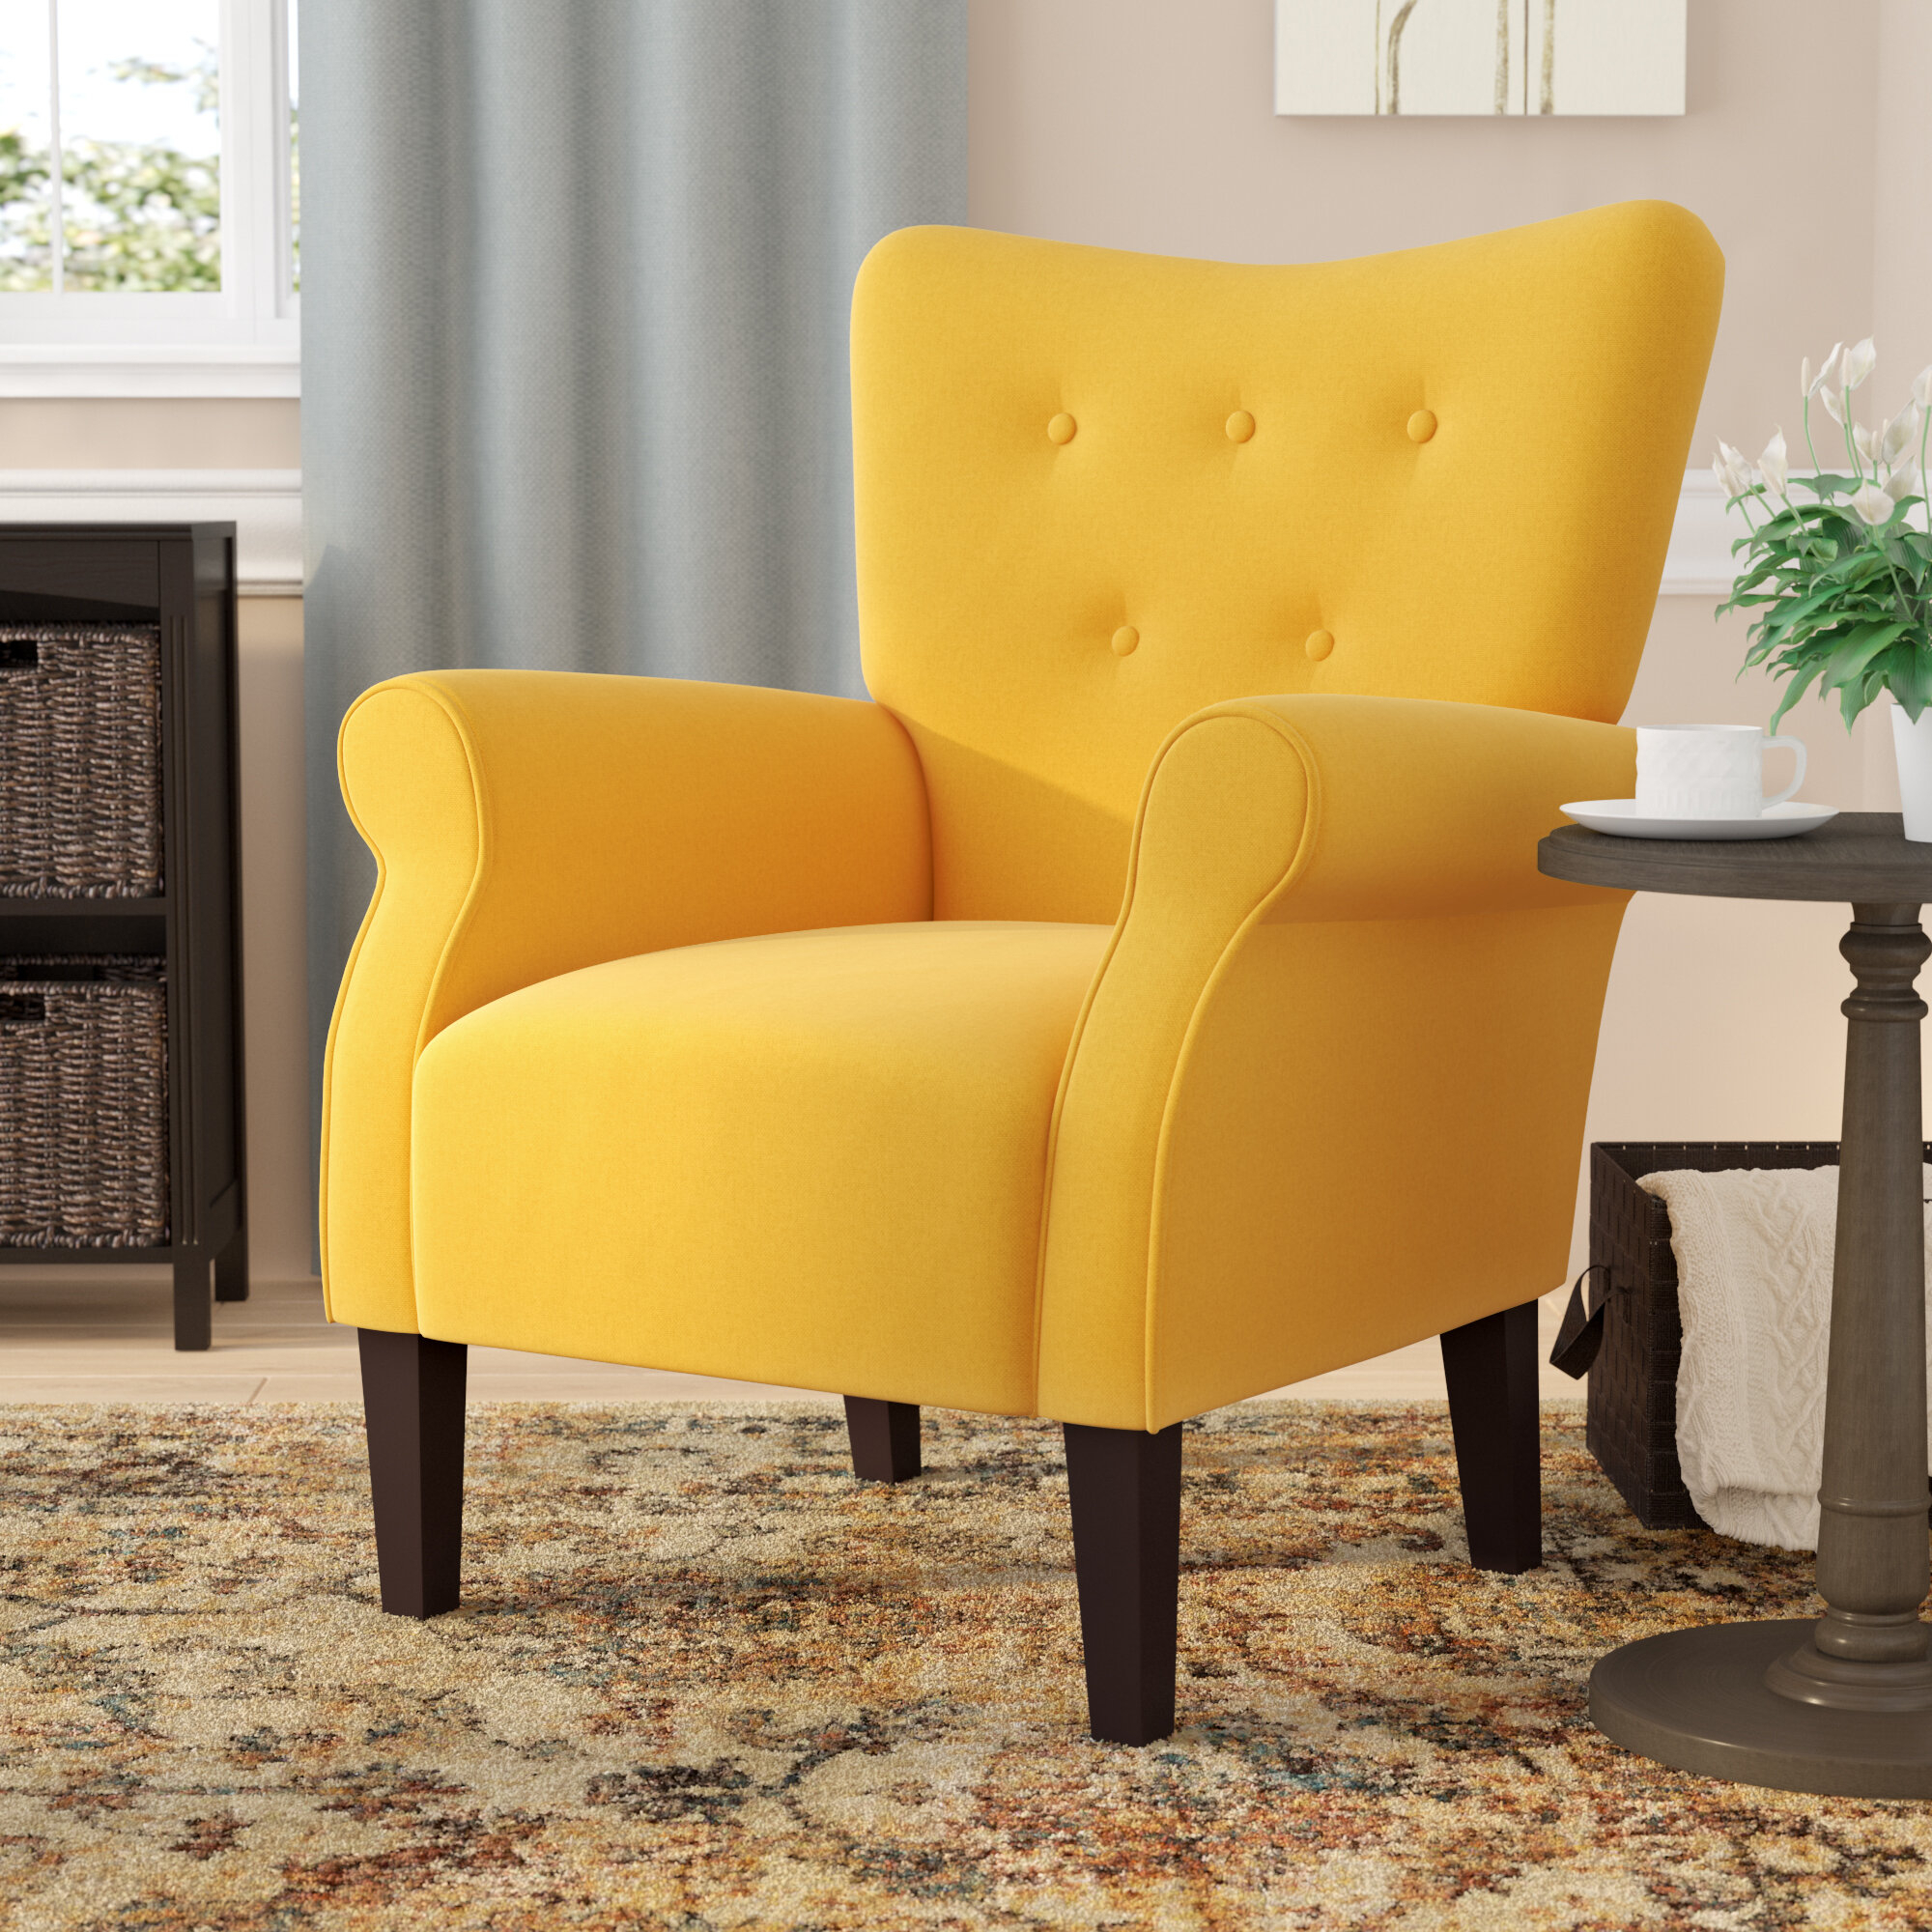 Armchairs | Wayfair Intended For Ragsdale Armchairs (View 4 of 15)